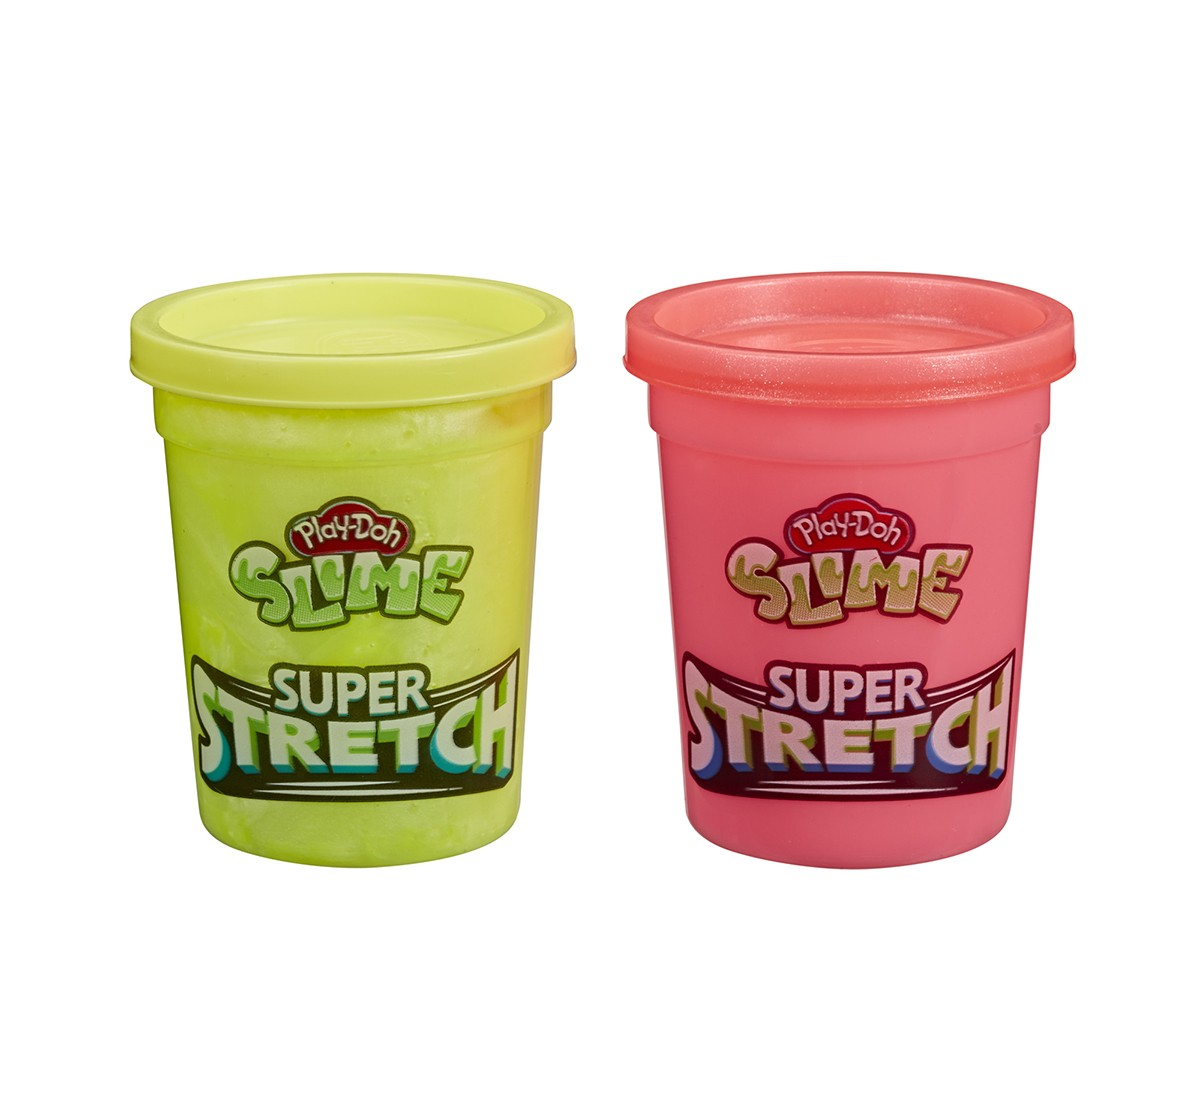 Play-Doh Slime Super Stretch 2-Pack Assorted for Kids 3 Years and Up - Yellow and Red Sand, Slime & Others for Kids age 3Y+